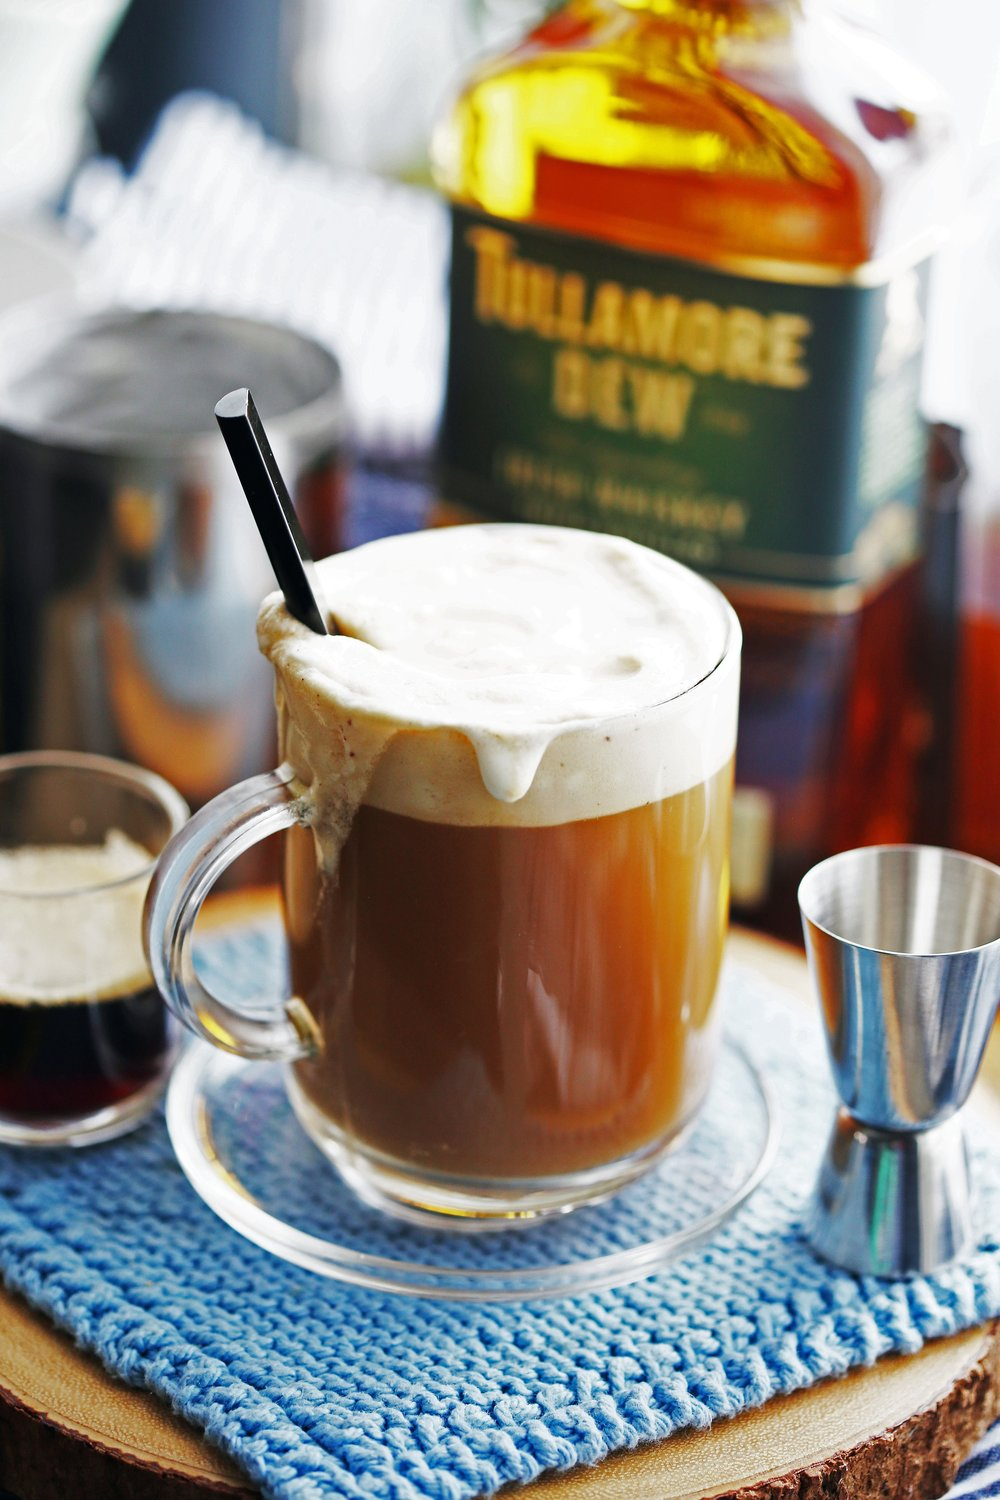 A glass mug filled with Maple Irish Coffee, gently stirred, with a black stirring spoon in it.